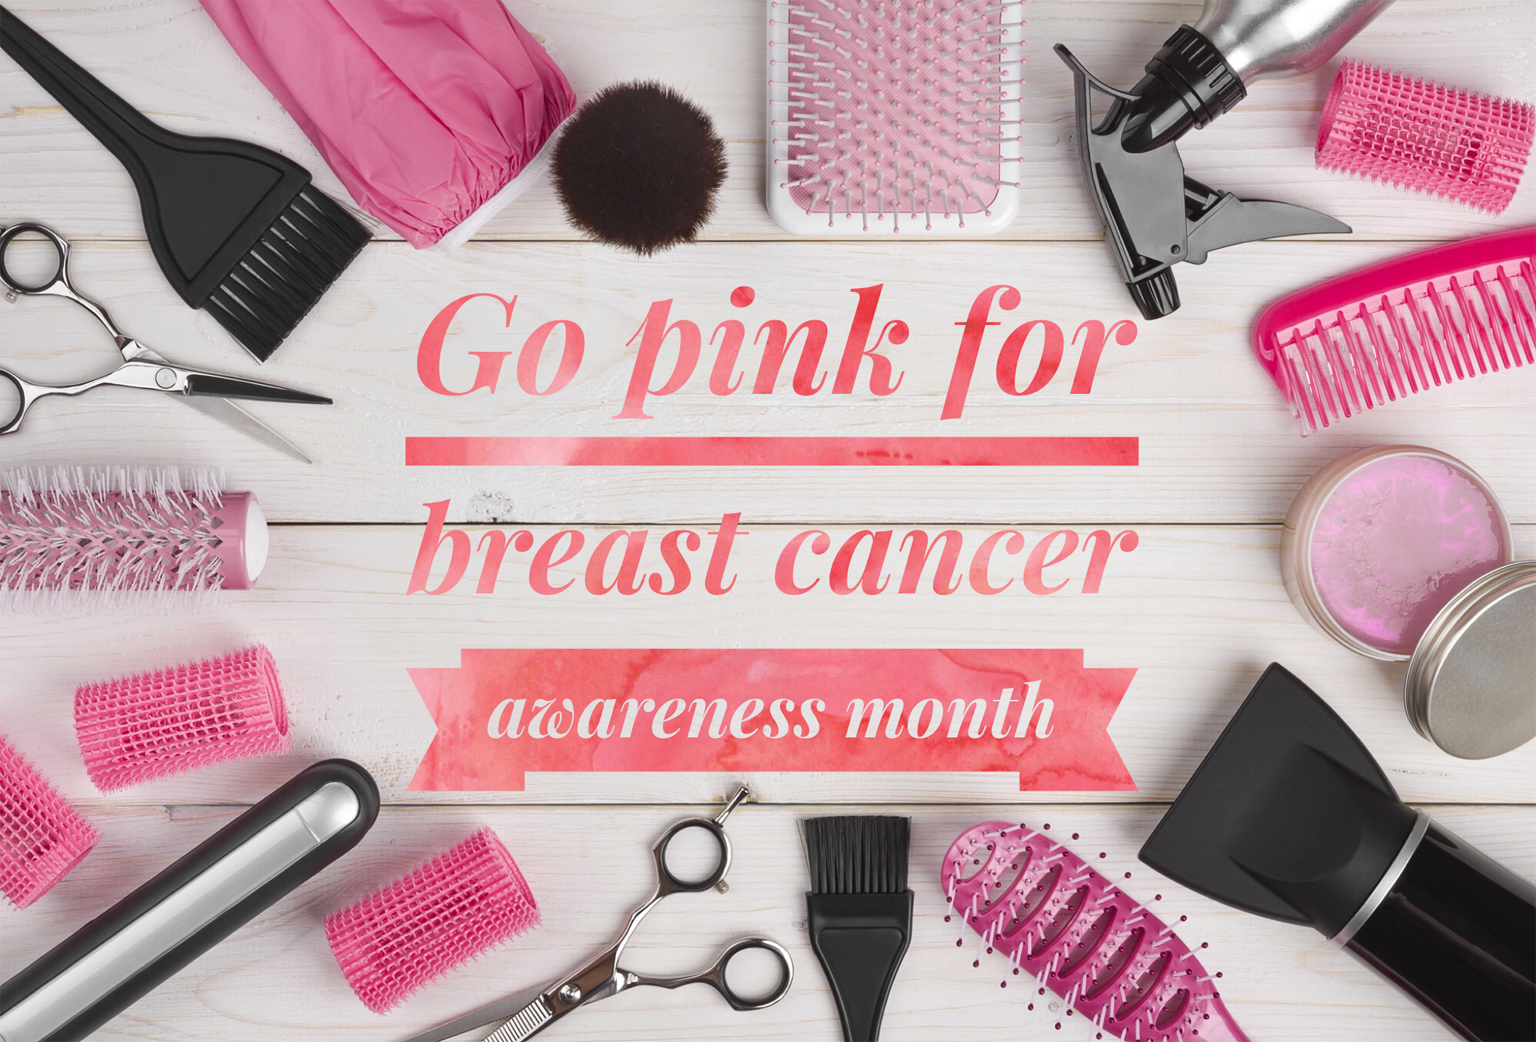 Product Roundup: Purposefully Pink Products that Support Breast Cancer Awareness